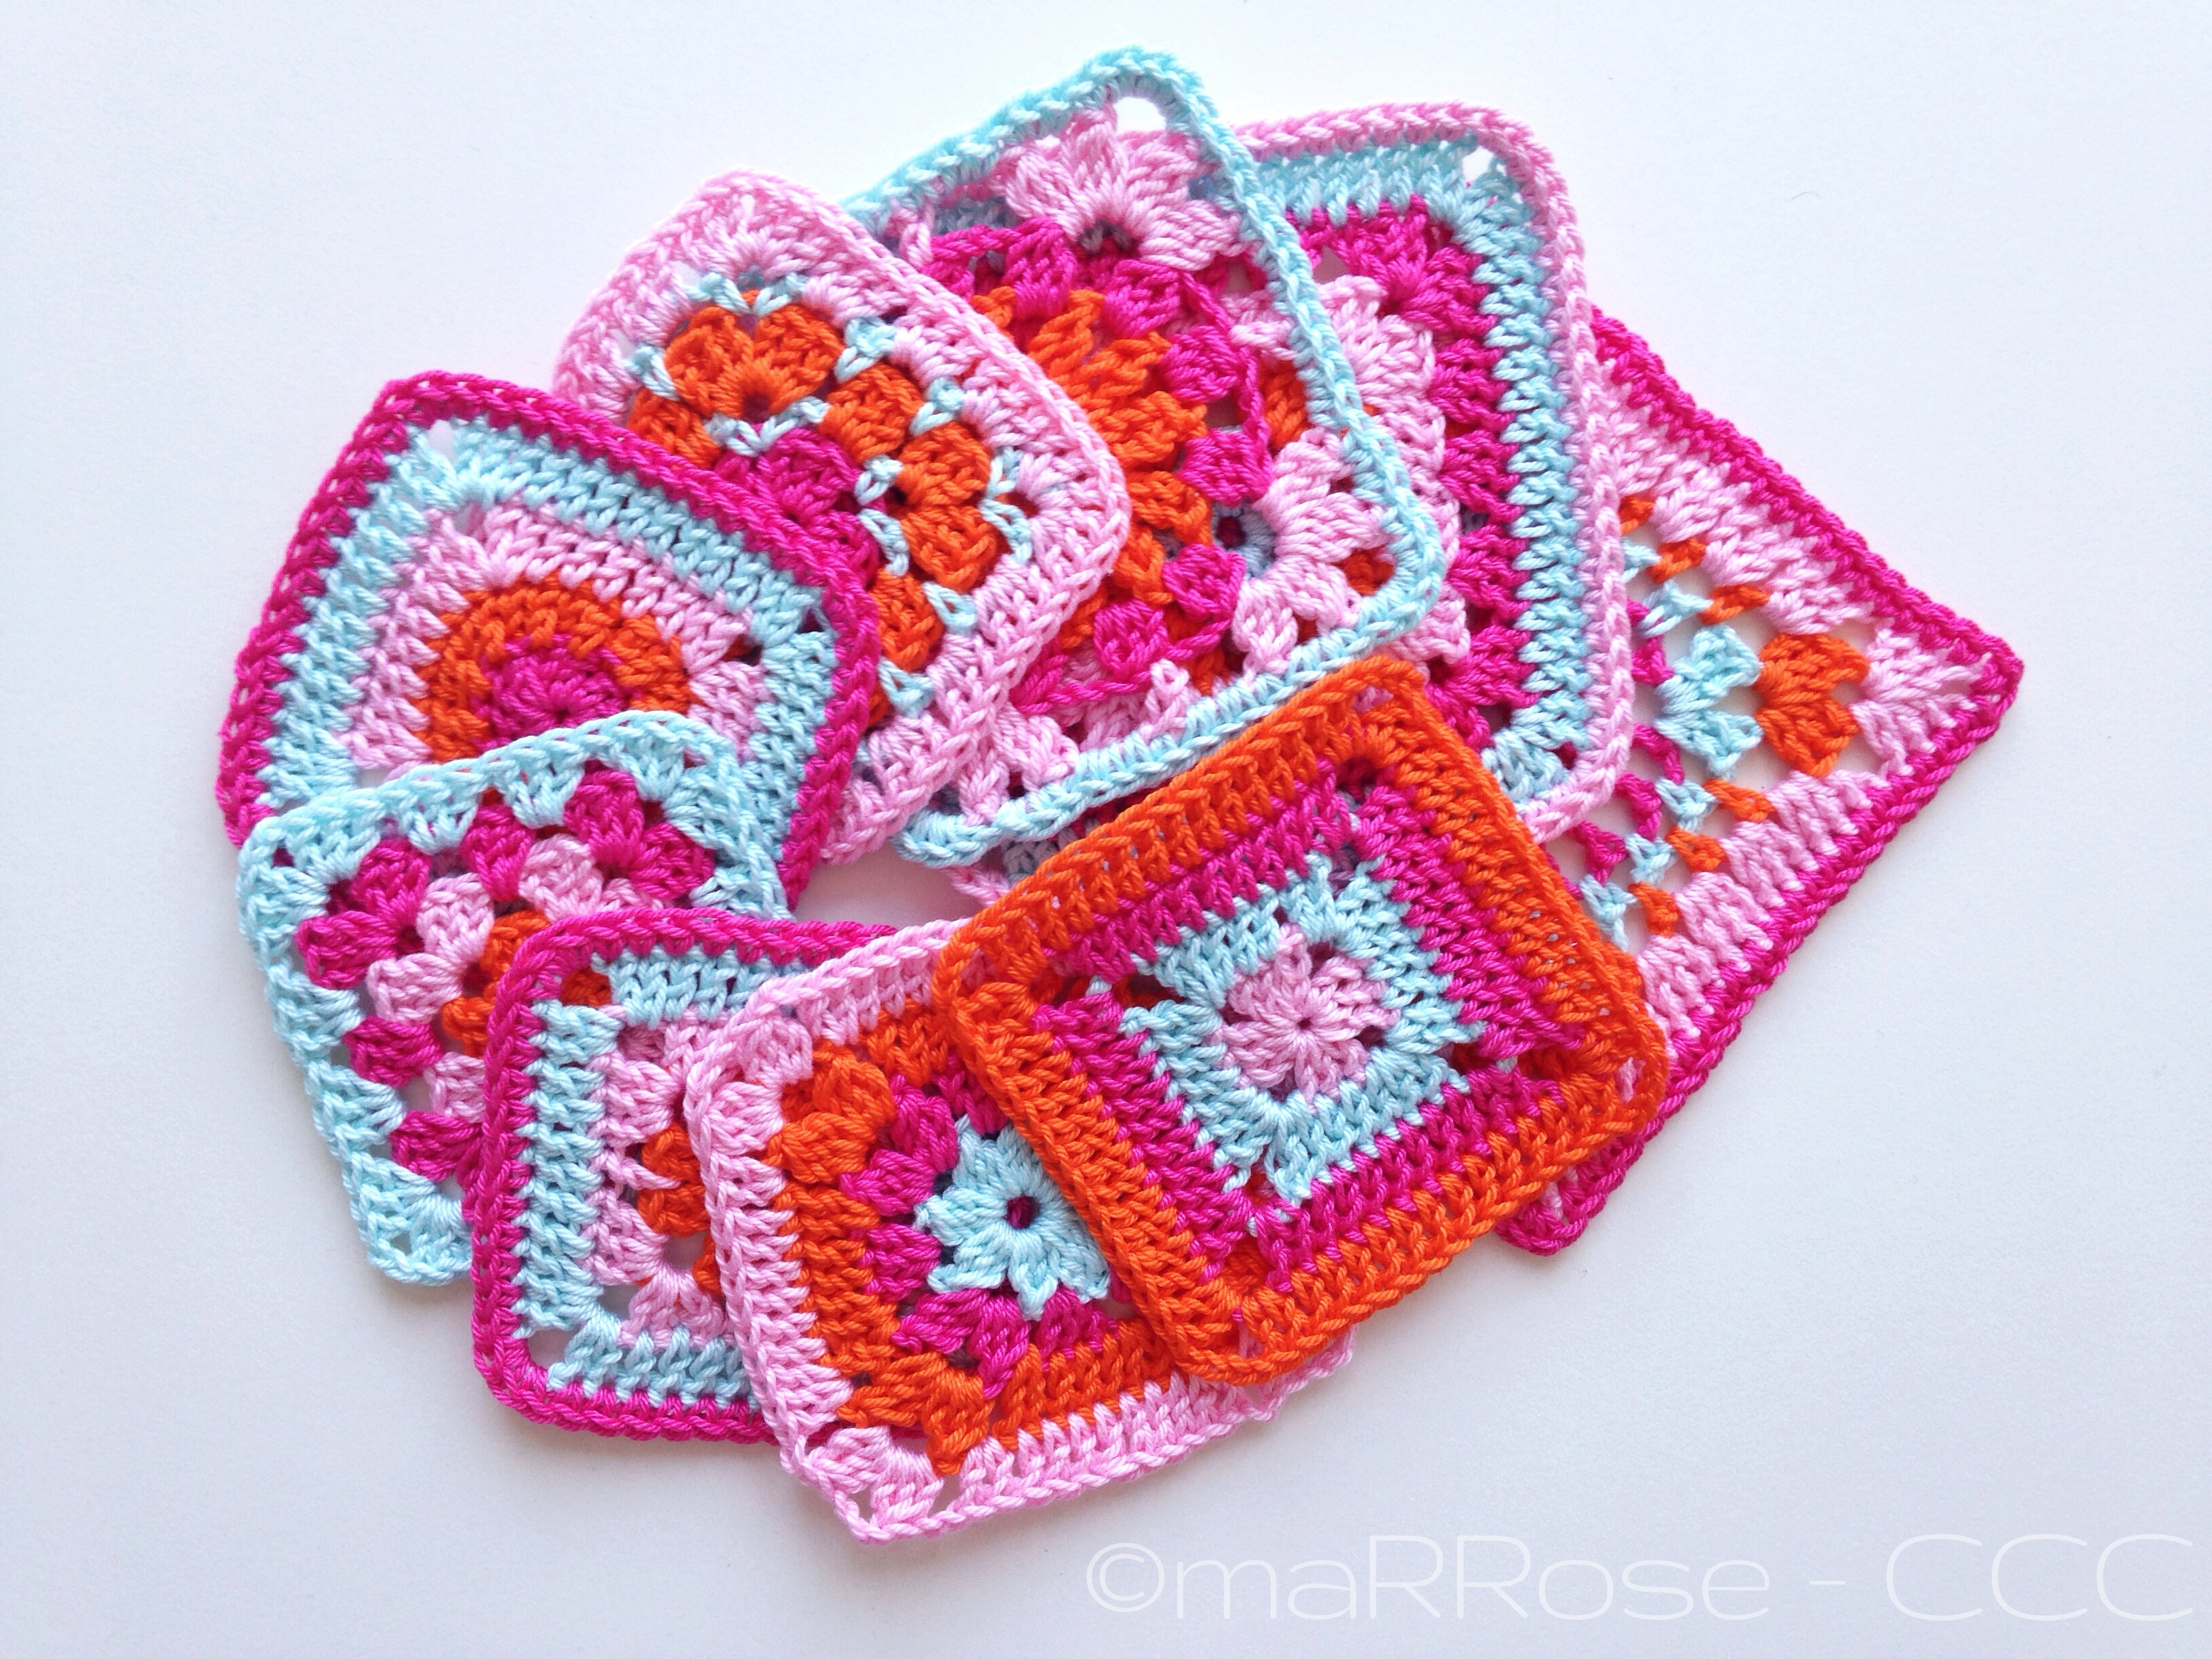 maRRose - CCC: Simply Crochet Grannies